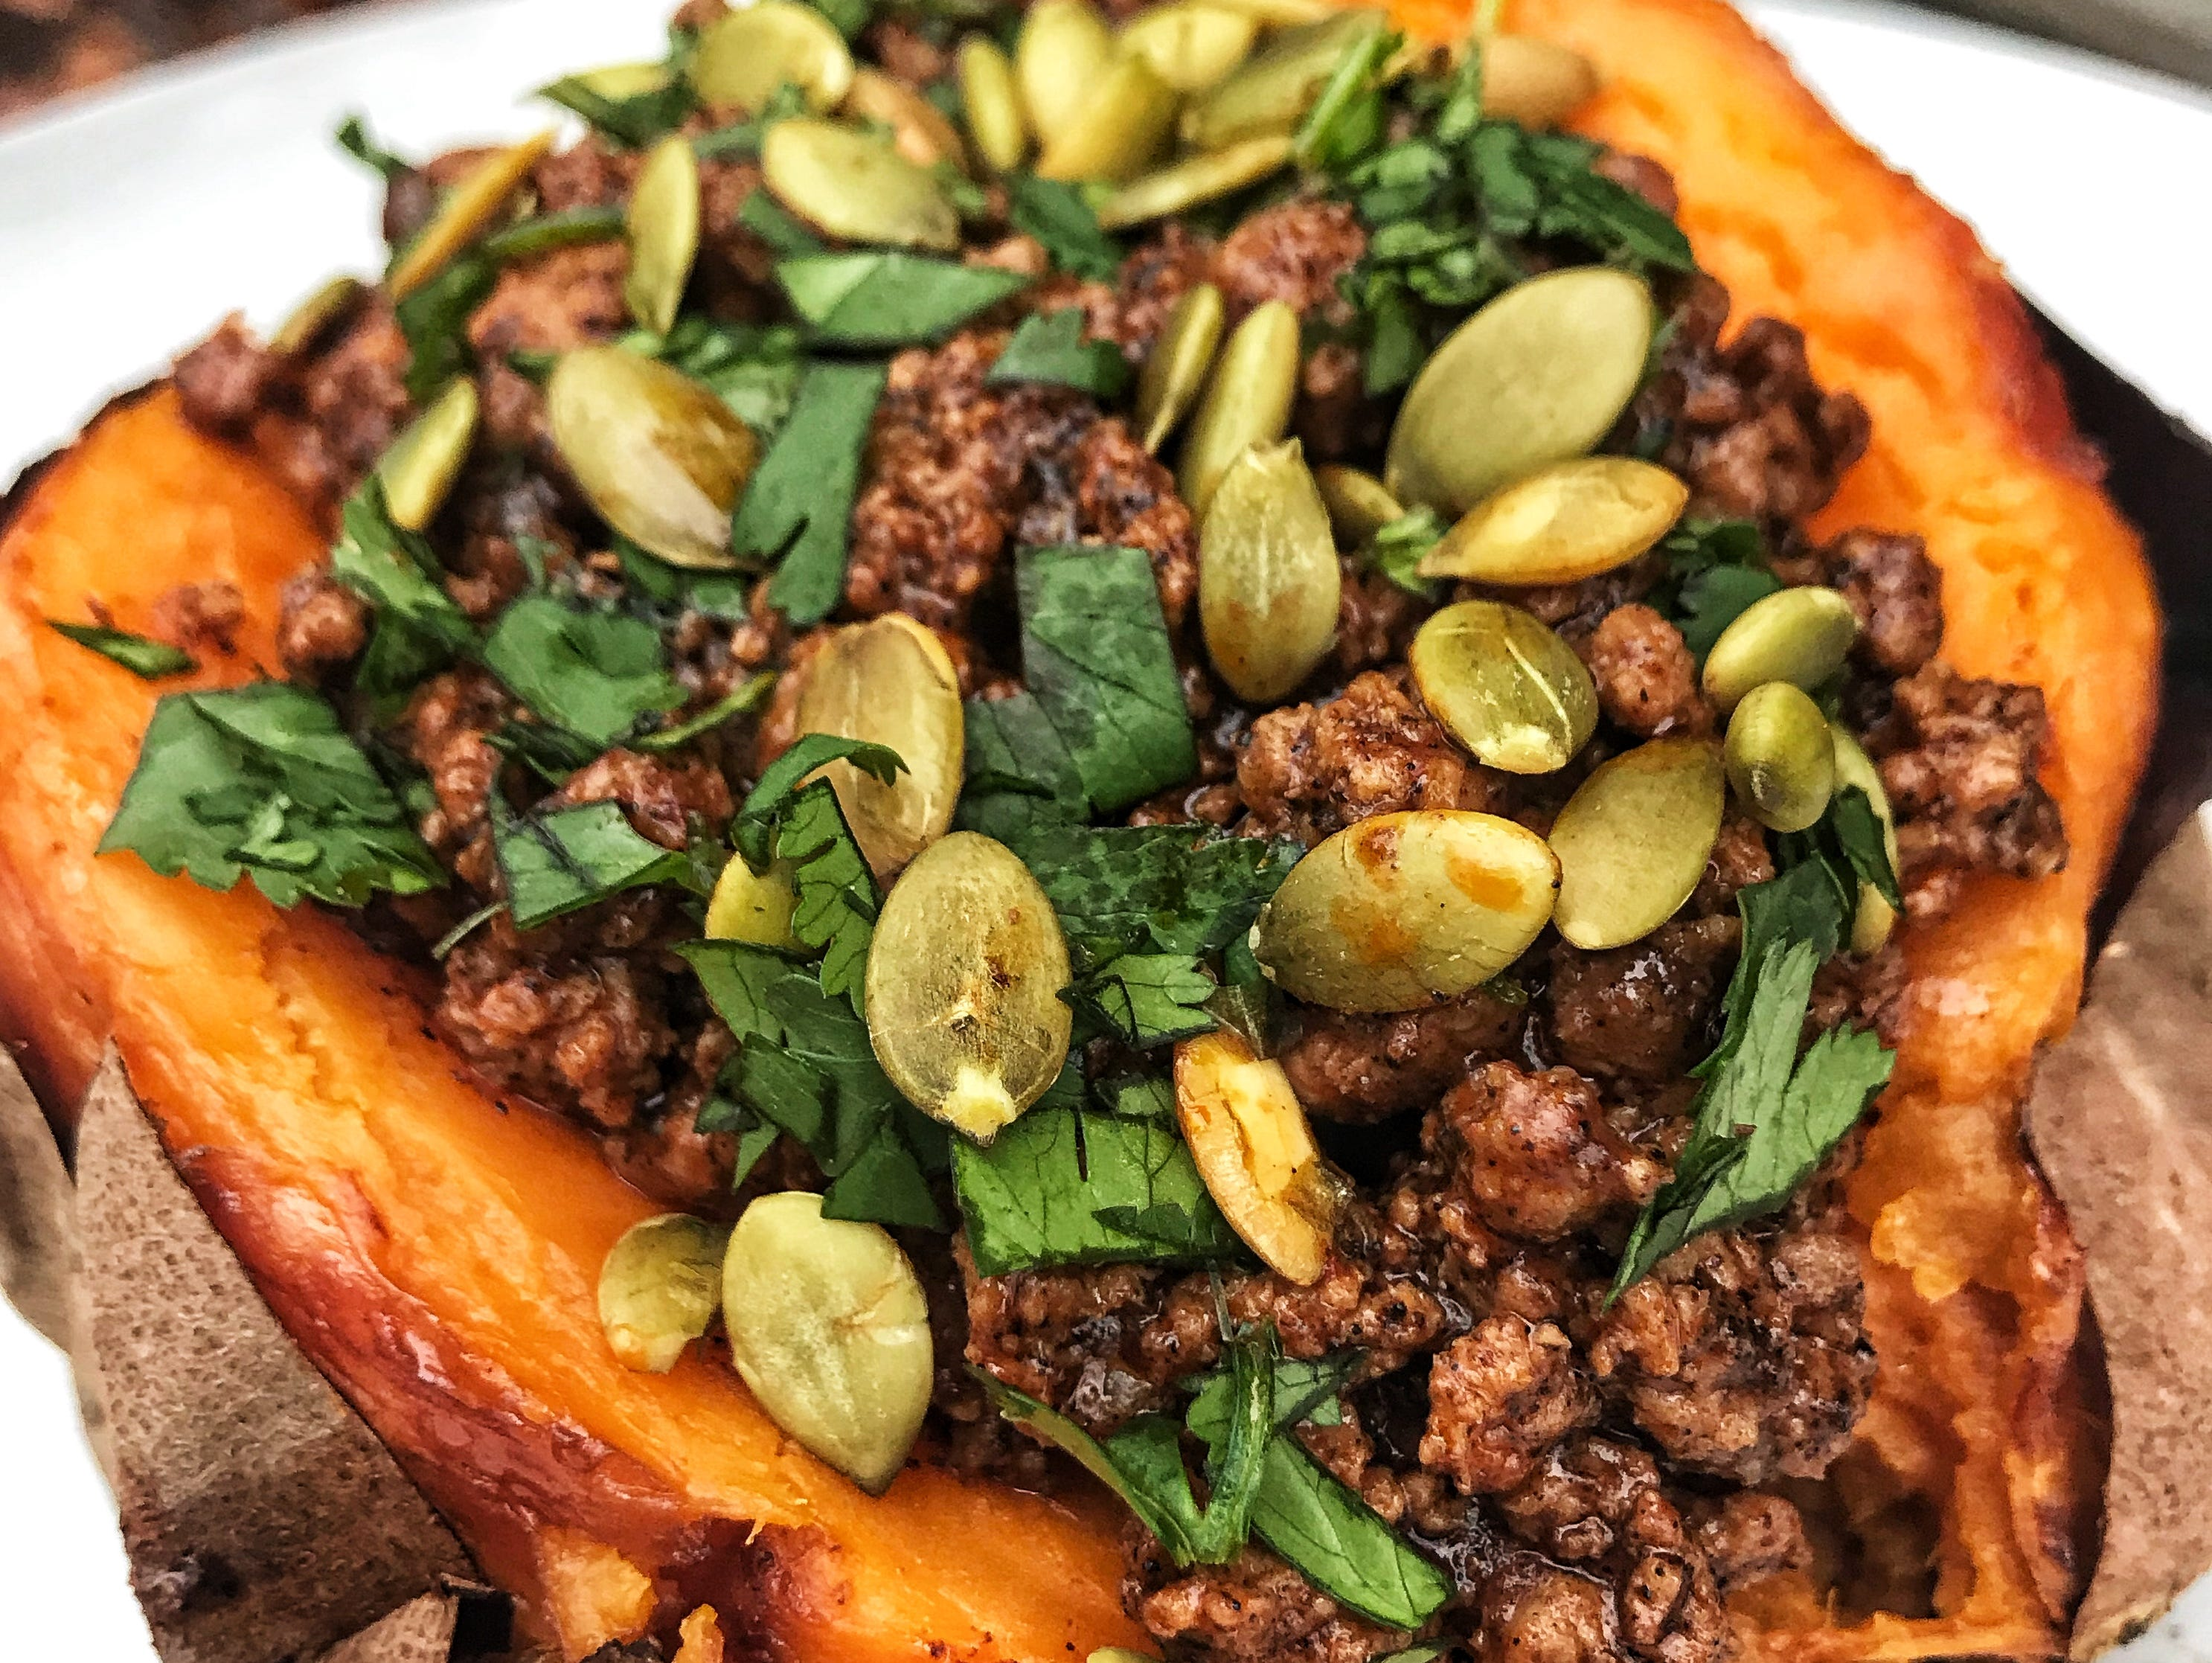 Fittest Kitchen has launched a meal prep service, which includes menu items like the grass-fed beef enchilada stuffed sweet potato.